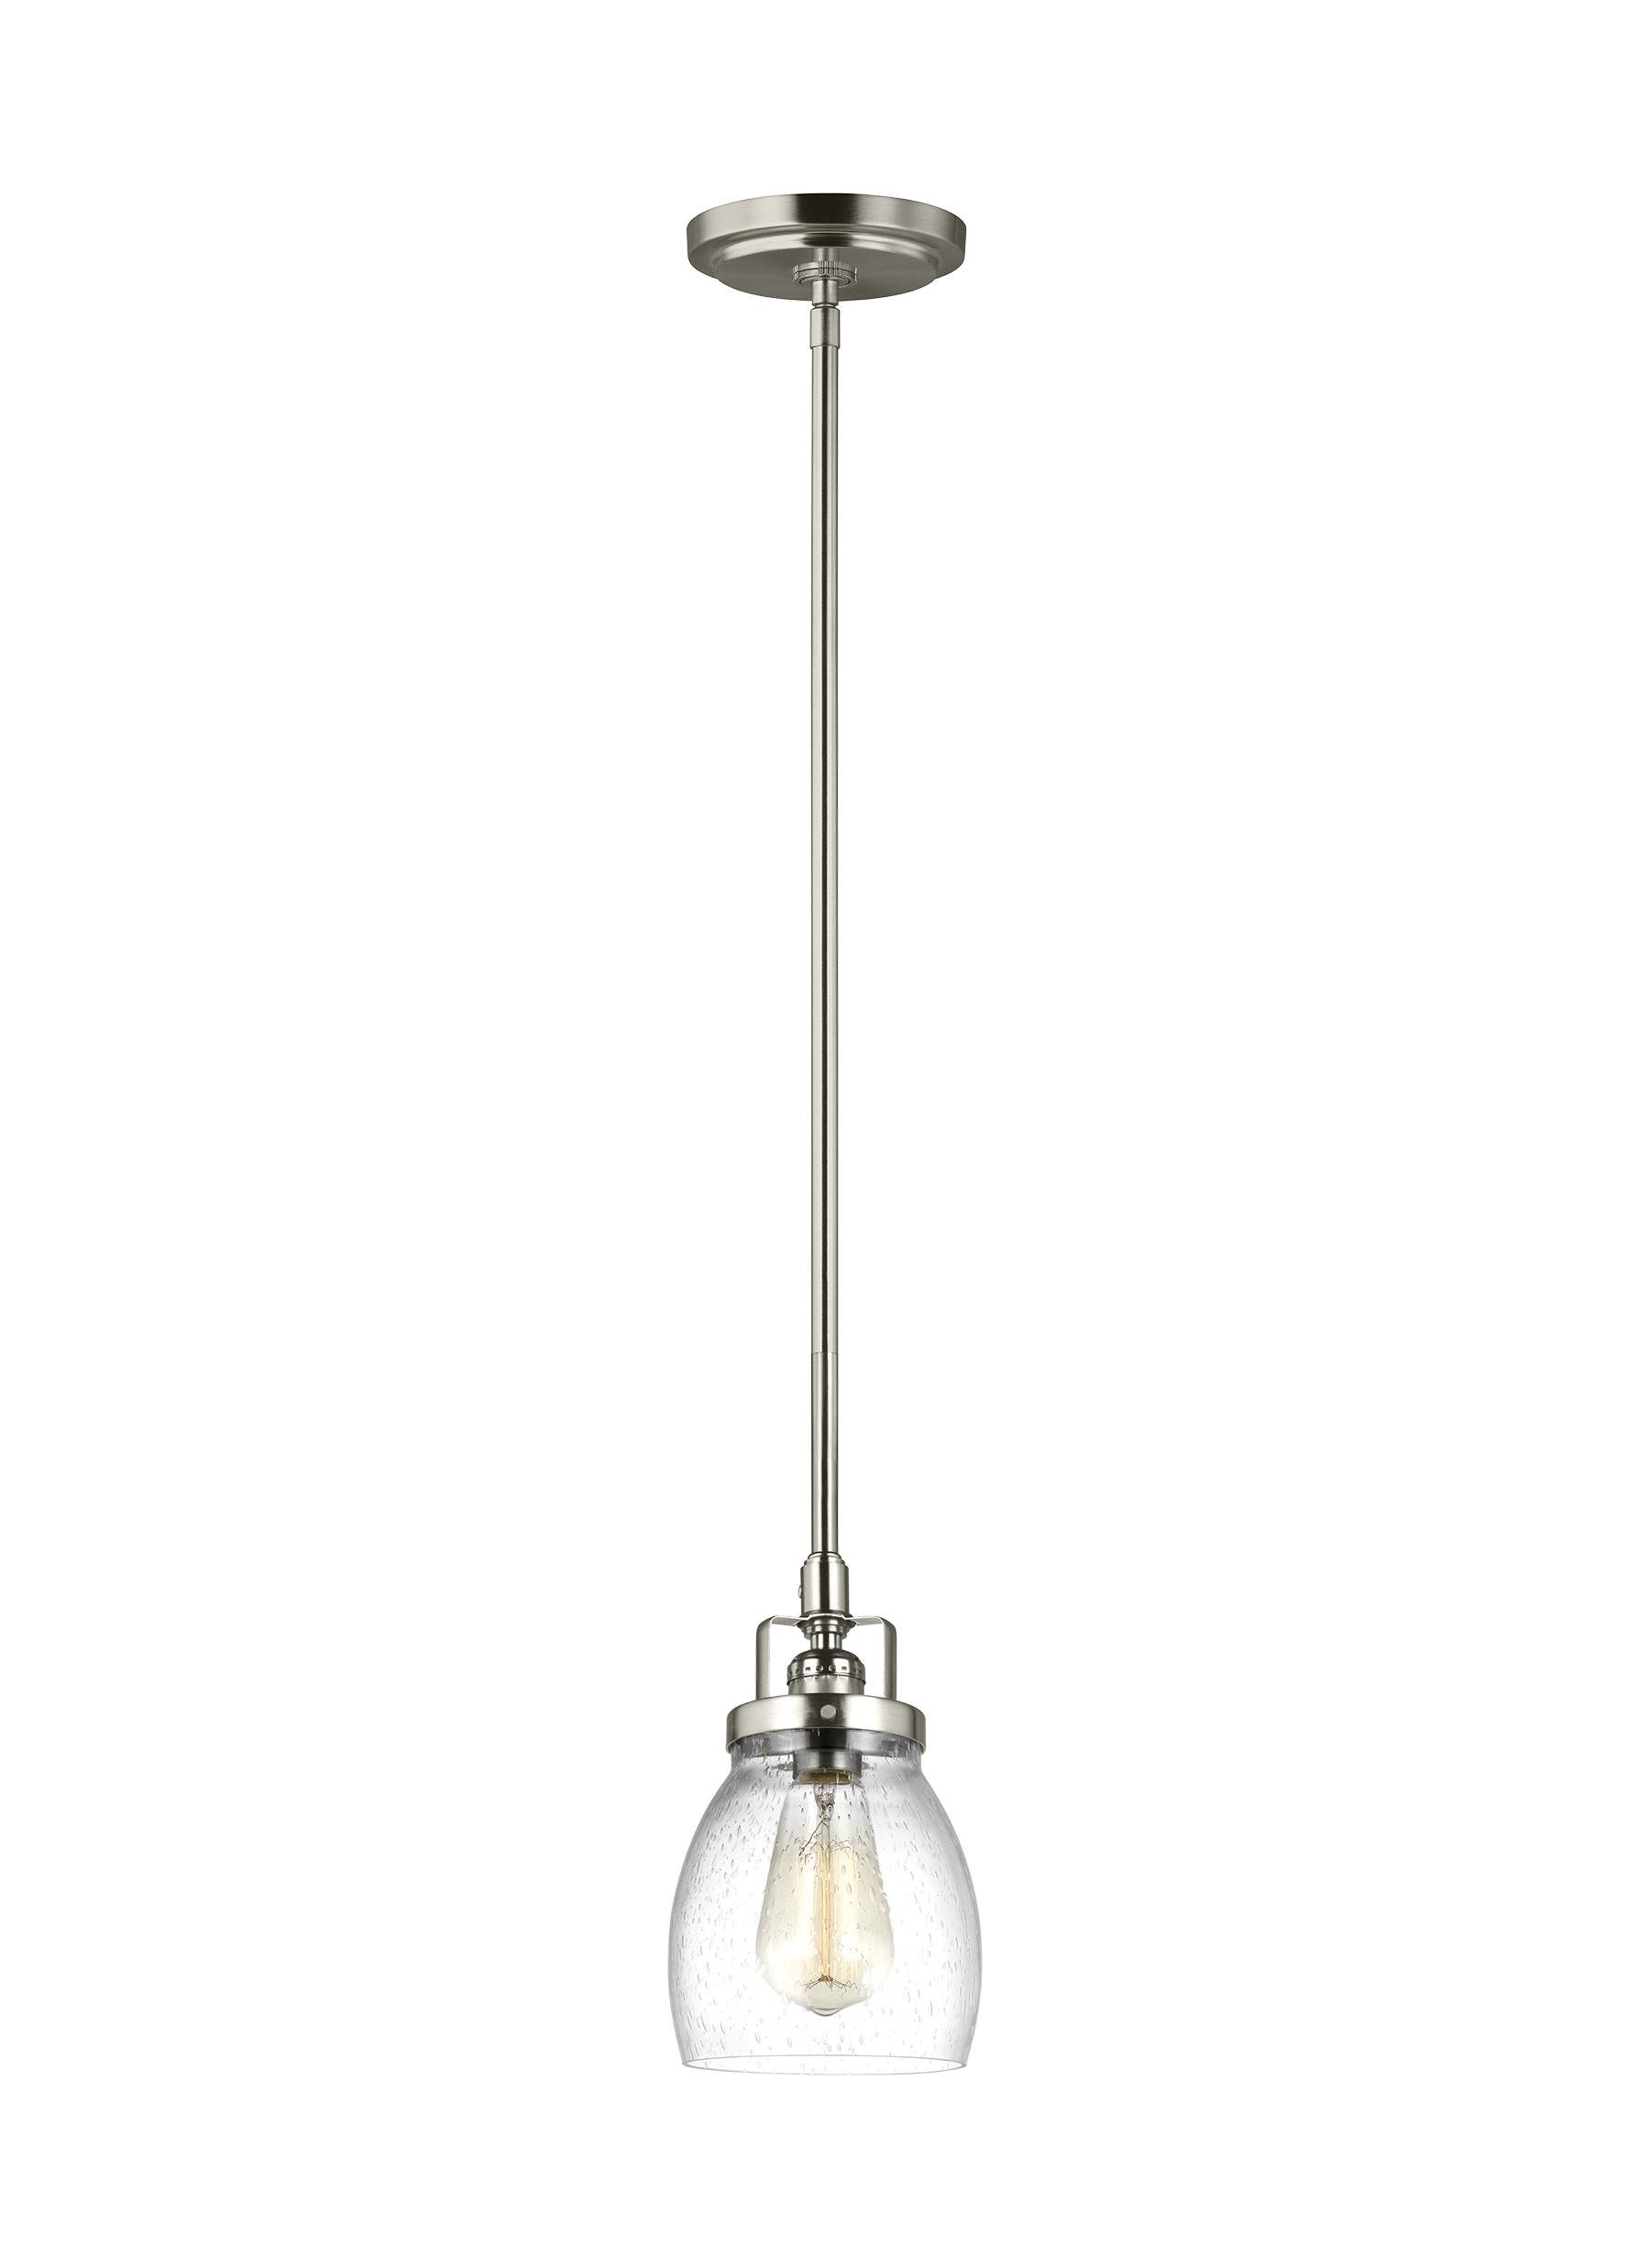 Houon 1 Light Cone Bell Pendant With Regard To Well Known Neal 1 Light Single Teardrop Pendants (View 7 of 20)